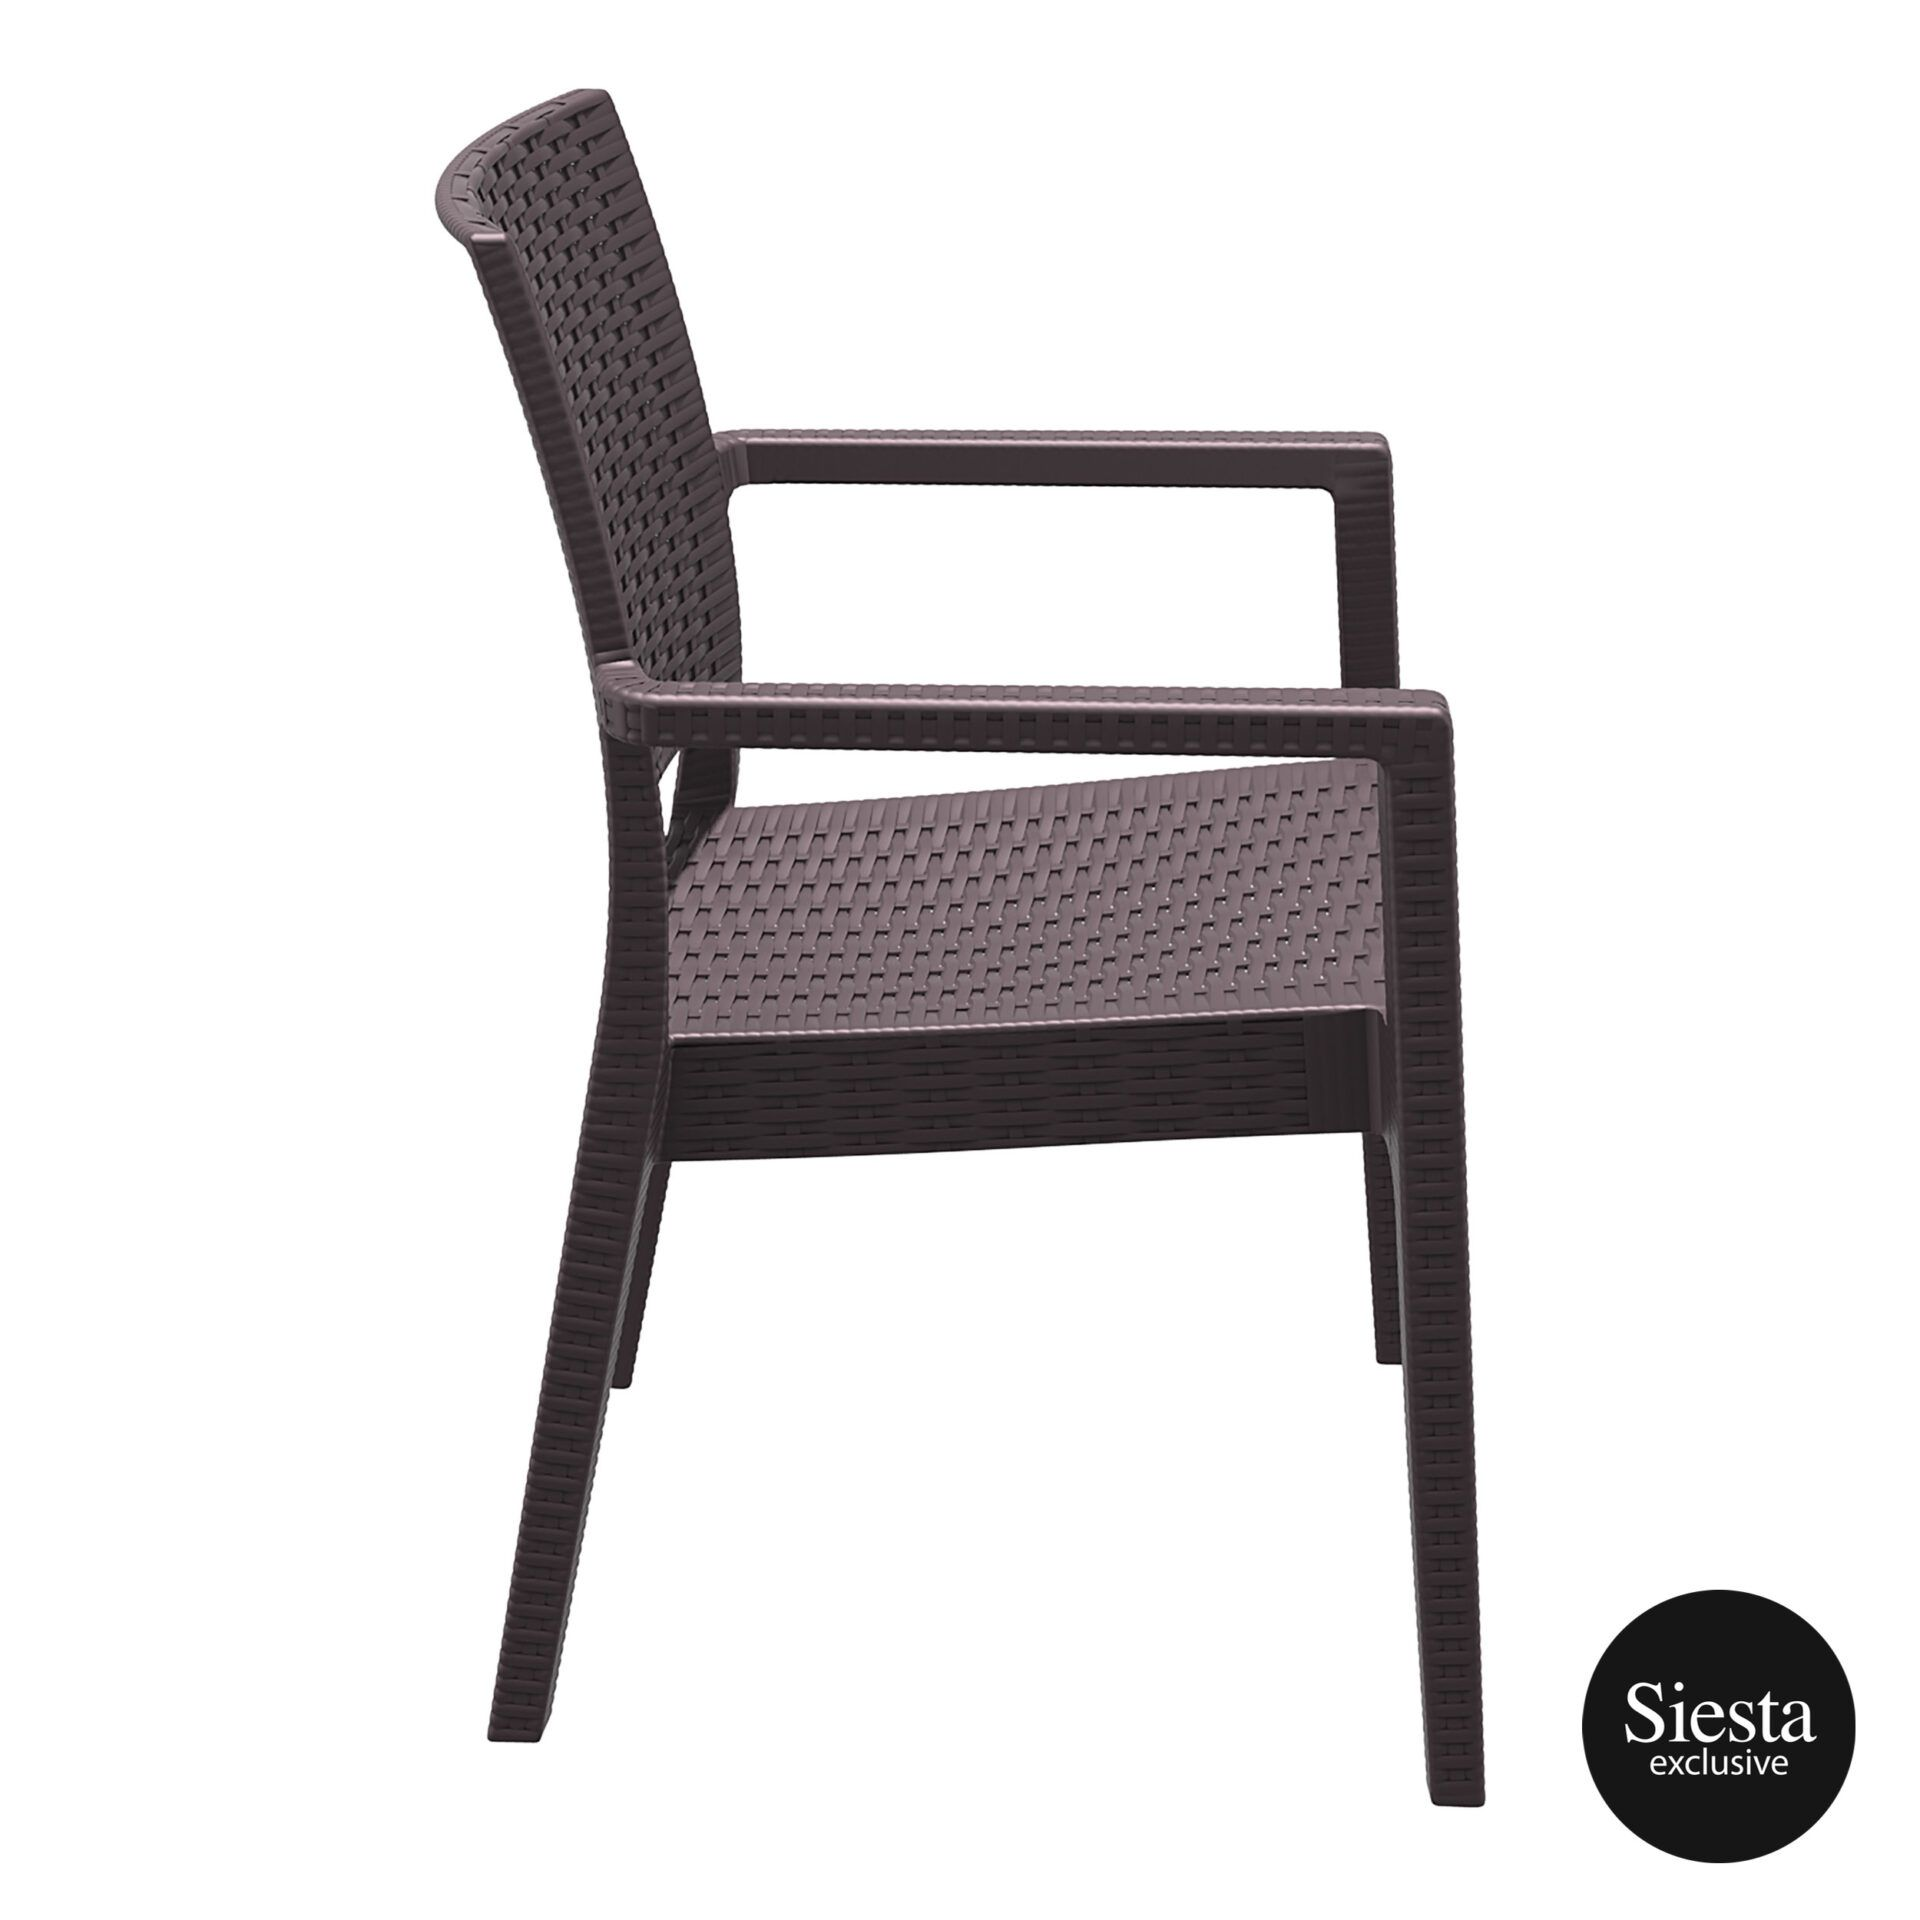 outdoor seating resin rattan ibiza armchair brown side 1